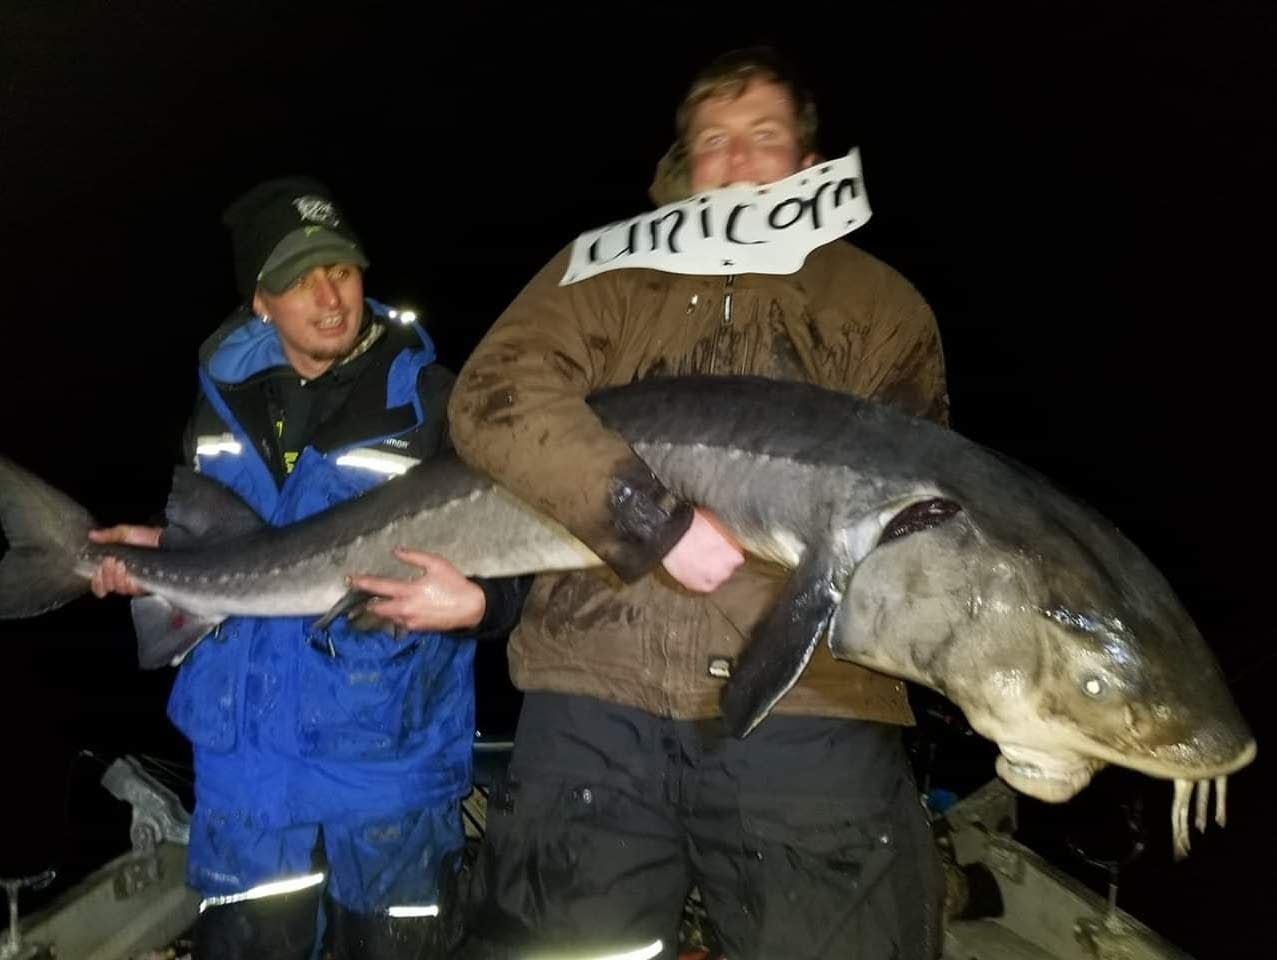 Trevor Slifka of Rochester says he may also have caught the sturgeon.